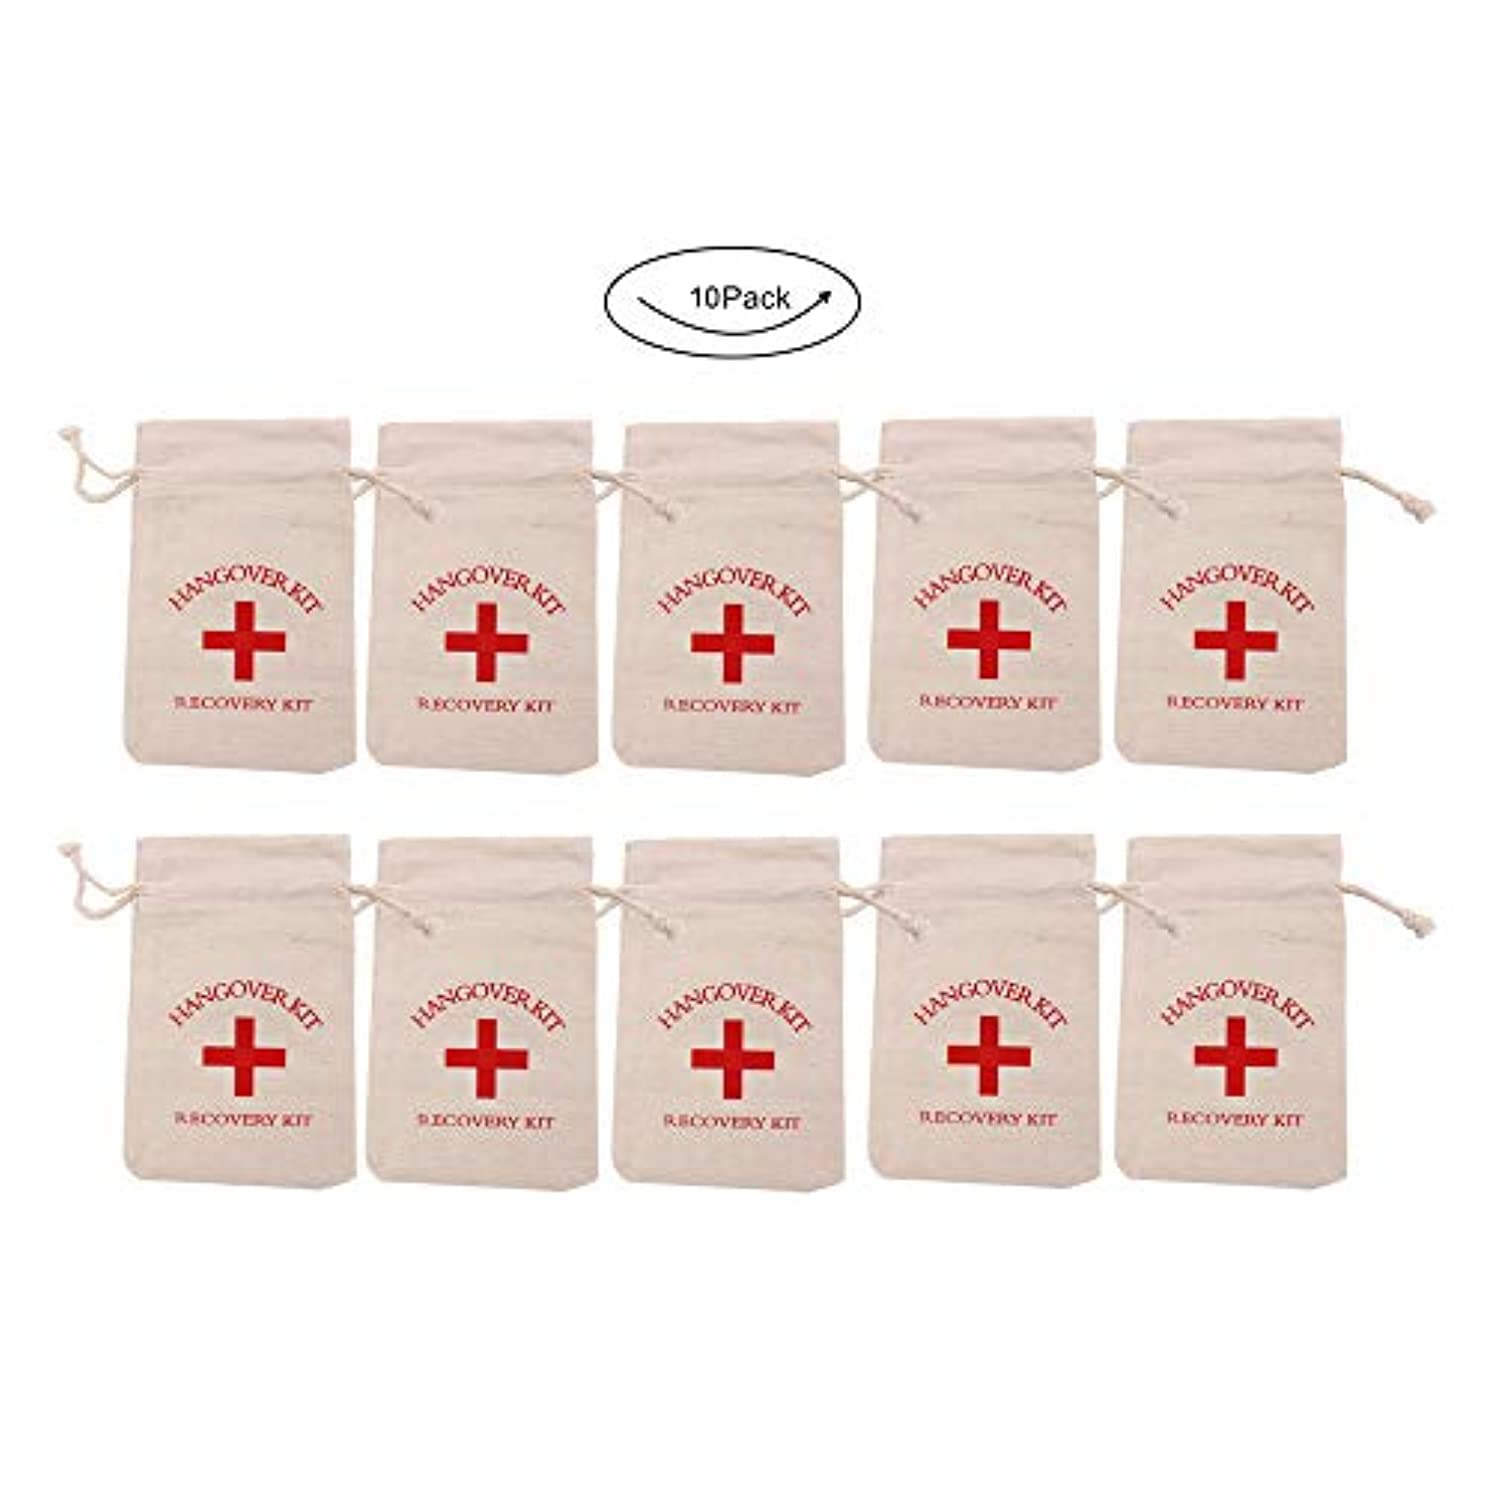 10pcs 3.9 x 5.5 Inch Hangover Kit Bags for Bachelorette Party Aid Bags Bridesmaid Gifts Bags Destination Wedding Welcome Bags